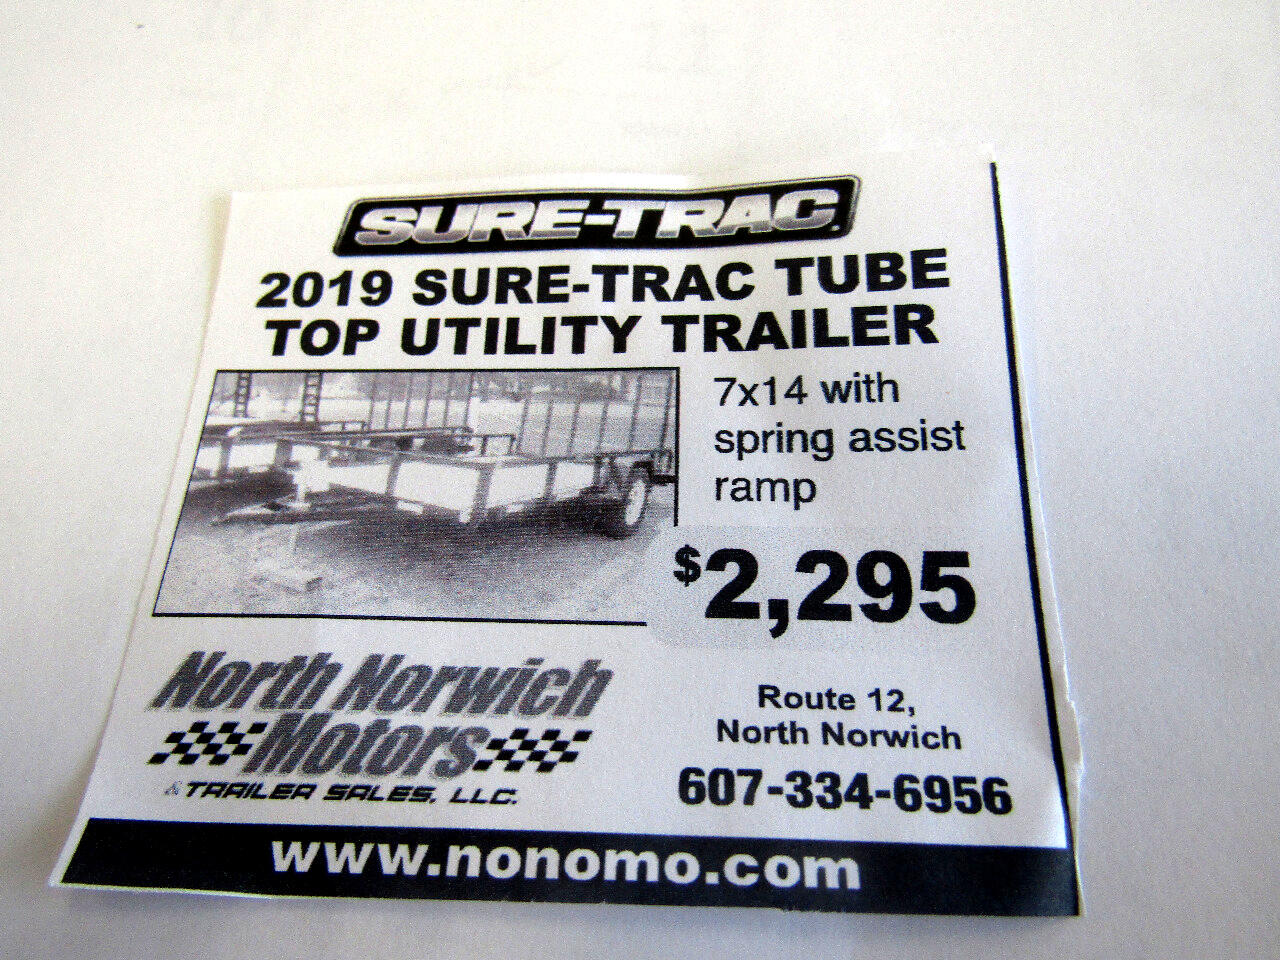 2019 Sure-Trac Tube Top Utility Trailer 7X14 WITH SPRING ASSIST RAMP   3K